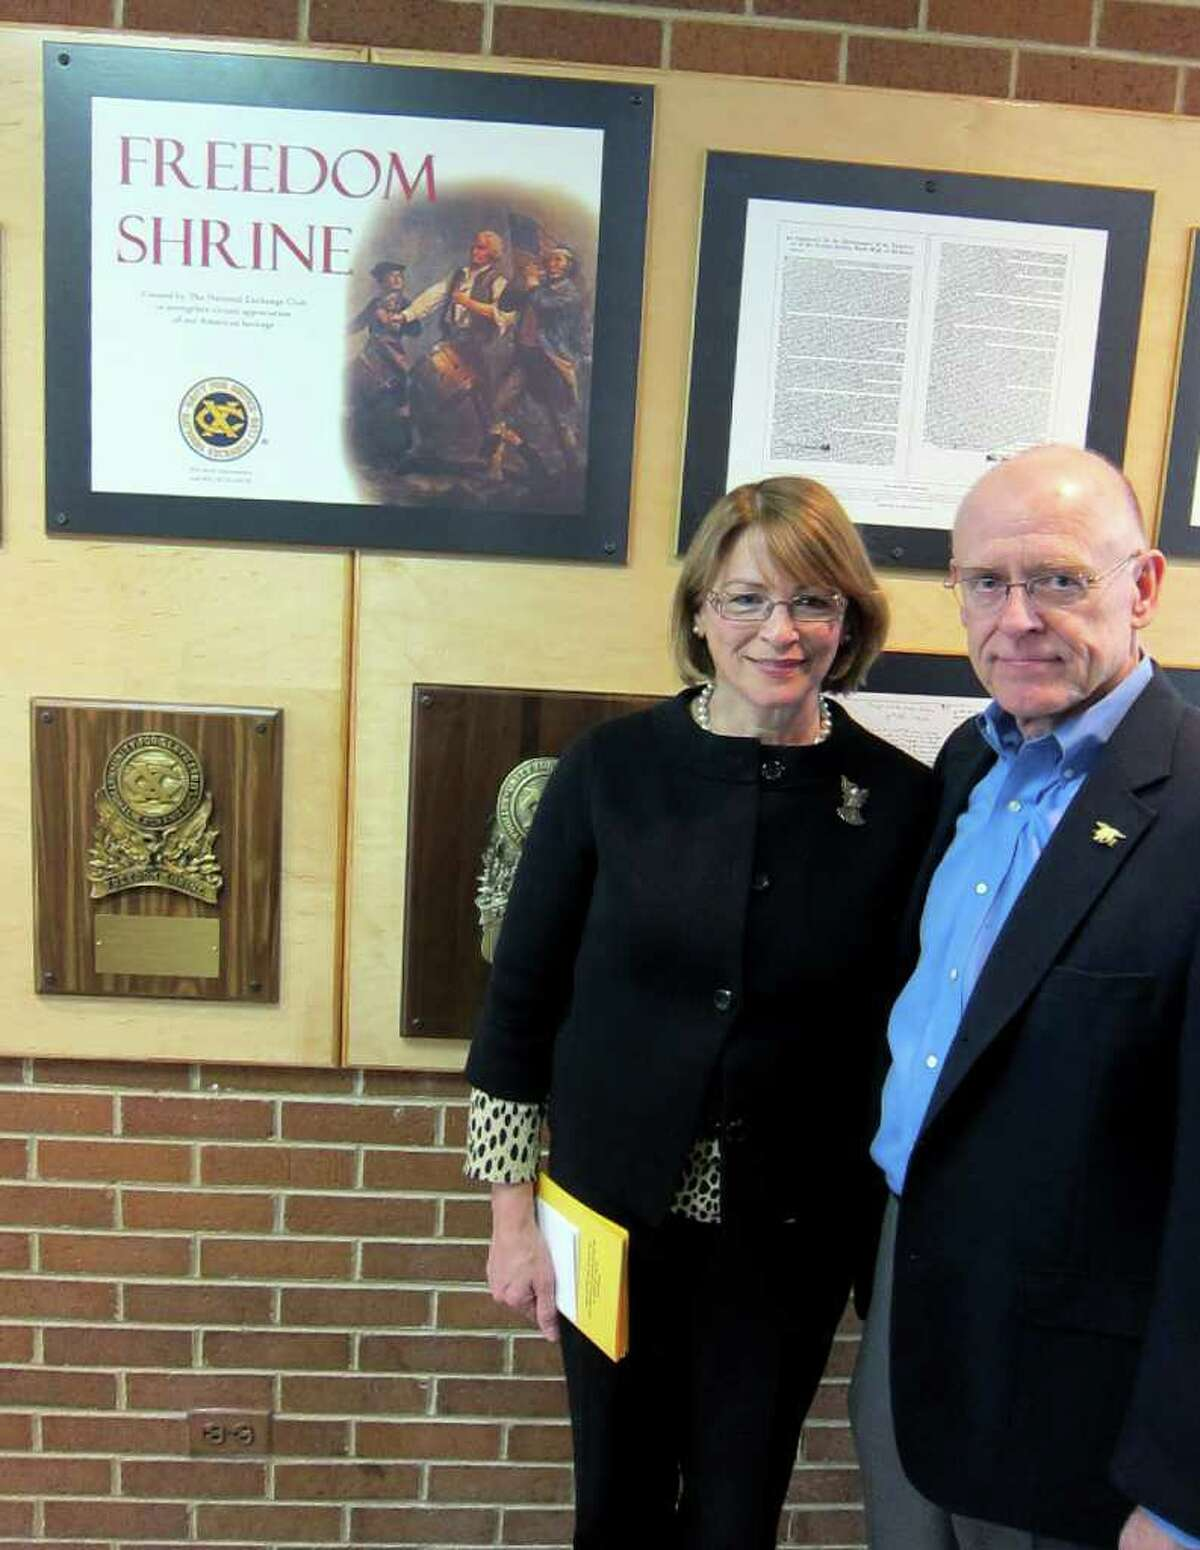 Patricia and Dr. Michael Parry stand in front of the Freedom Shrine dedicated to their son at Trinity Catholic High School on Newfield Avenue following a ceremony Saturday morning Feb. 4. Their son, Chief Petty Officer Brian Bill of the U.S. Navy SEALs, was among 30 U.S. soliders killed in a helicopter crash in Afgahnistan last summer.